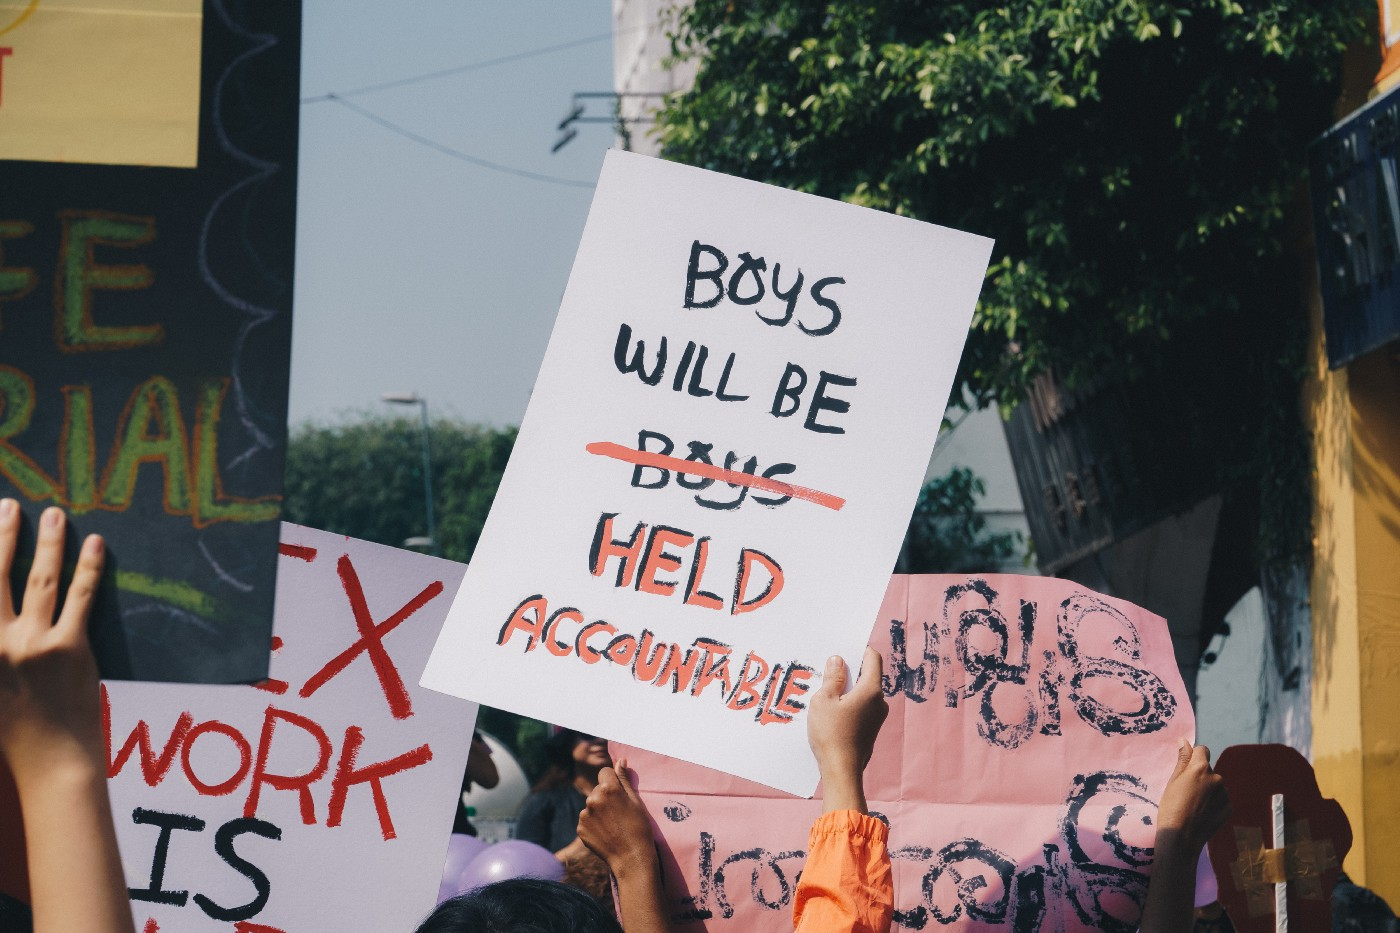 Protest with sign saying boys will be held accountable.